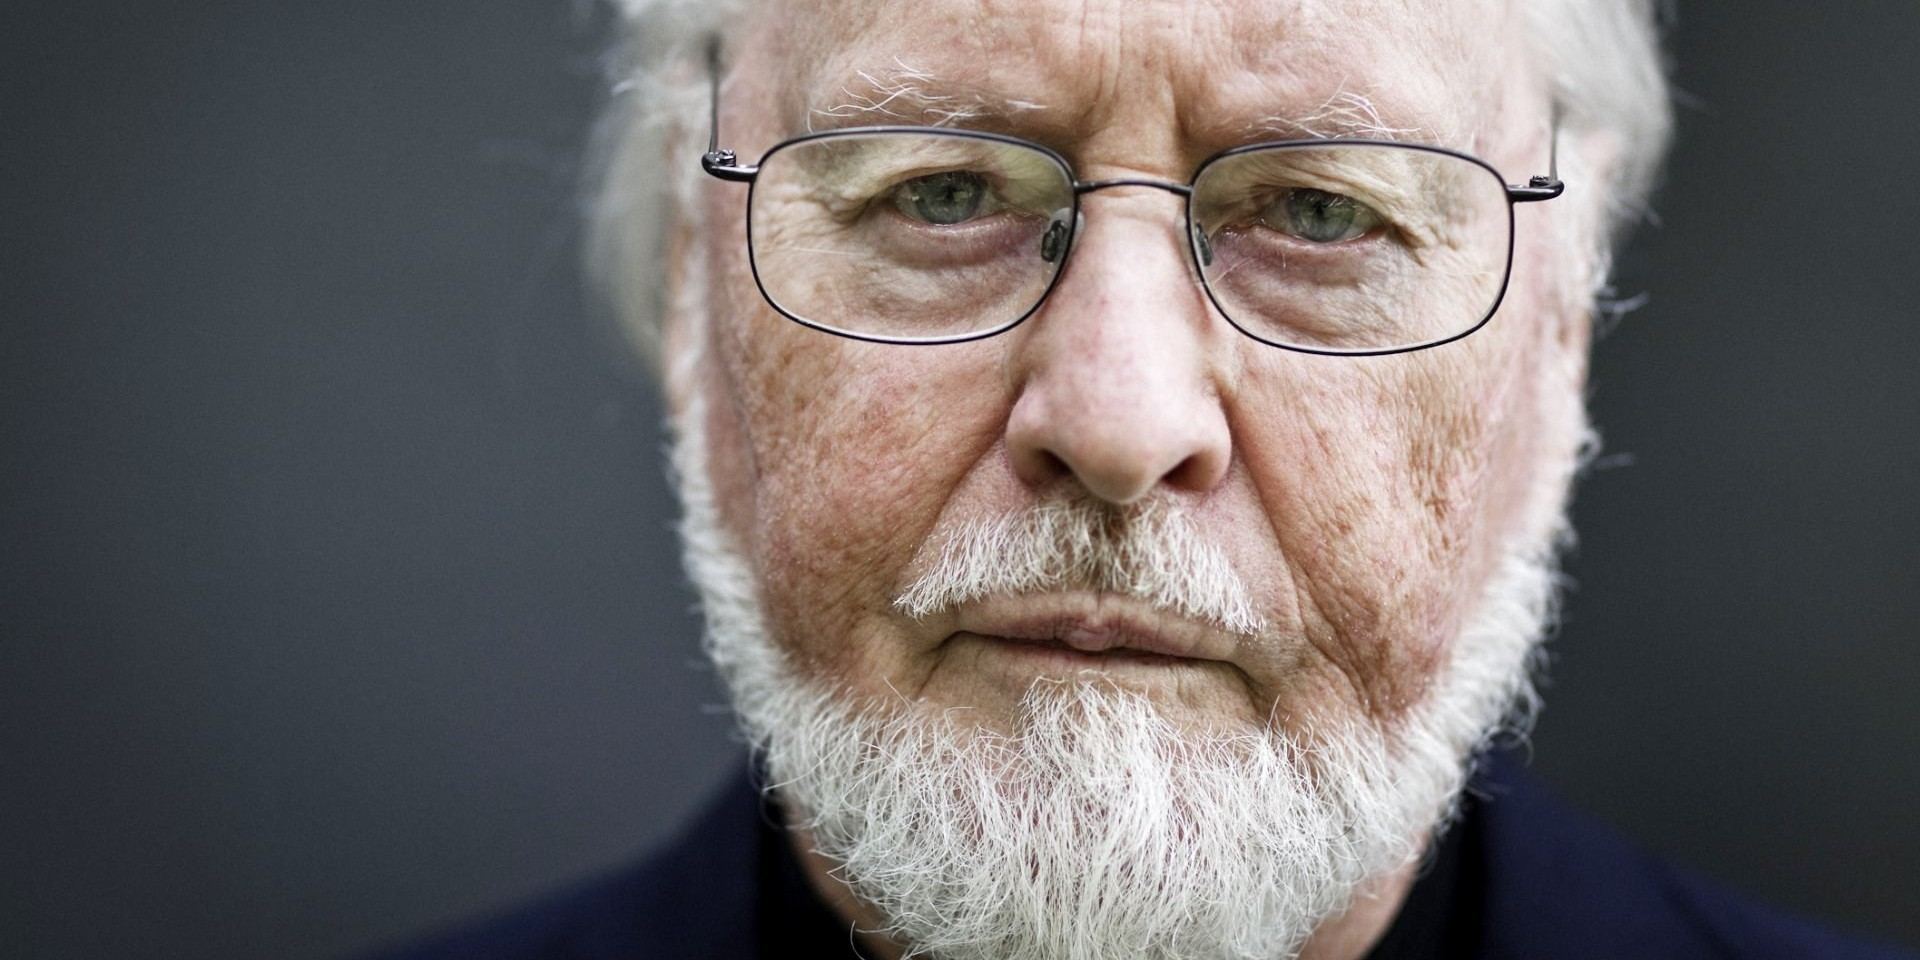 Episode IX of the Star Wars saga, out 2019, will be composer John Williams' last